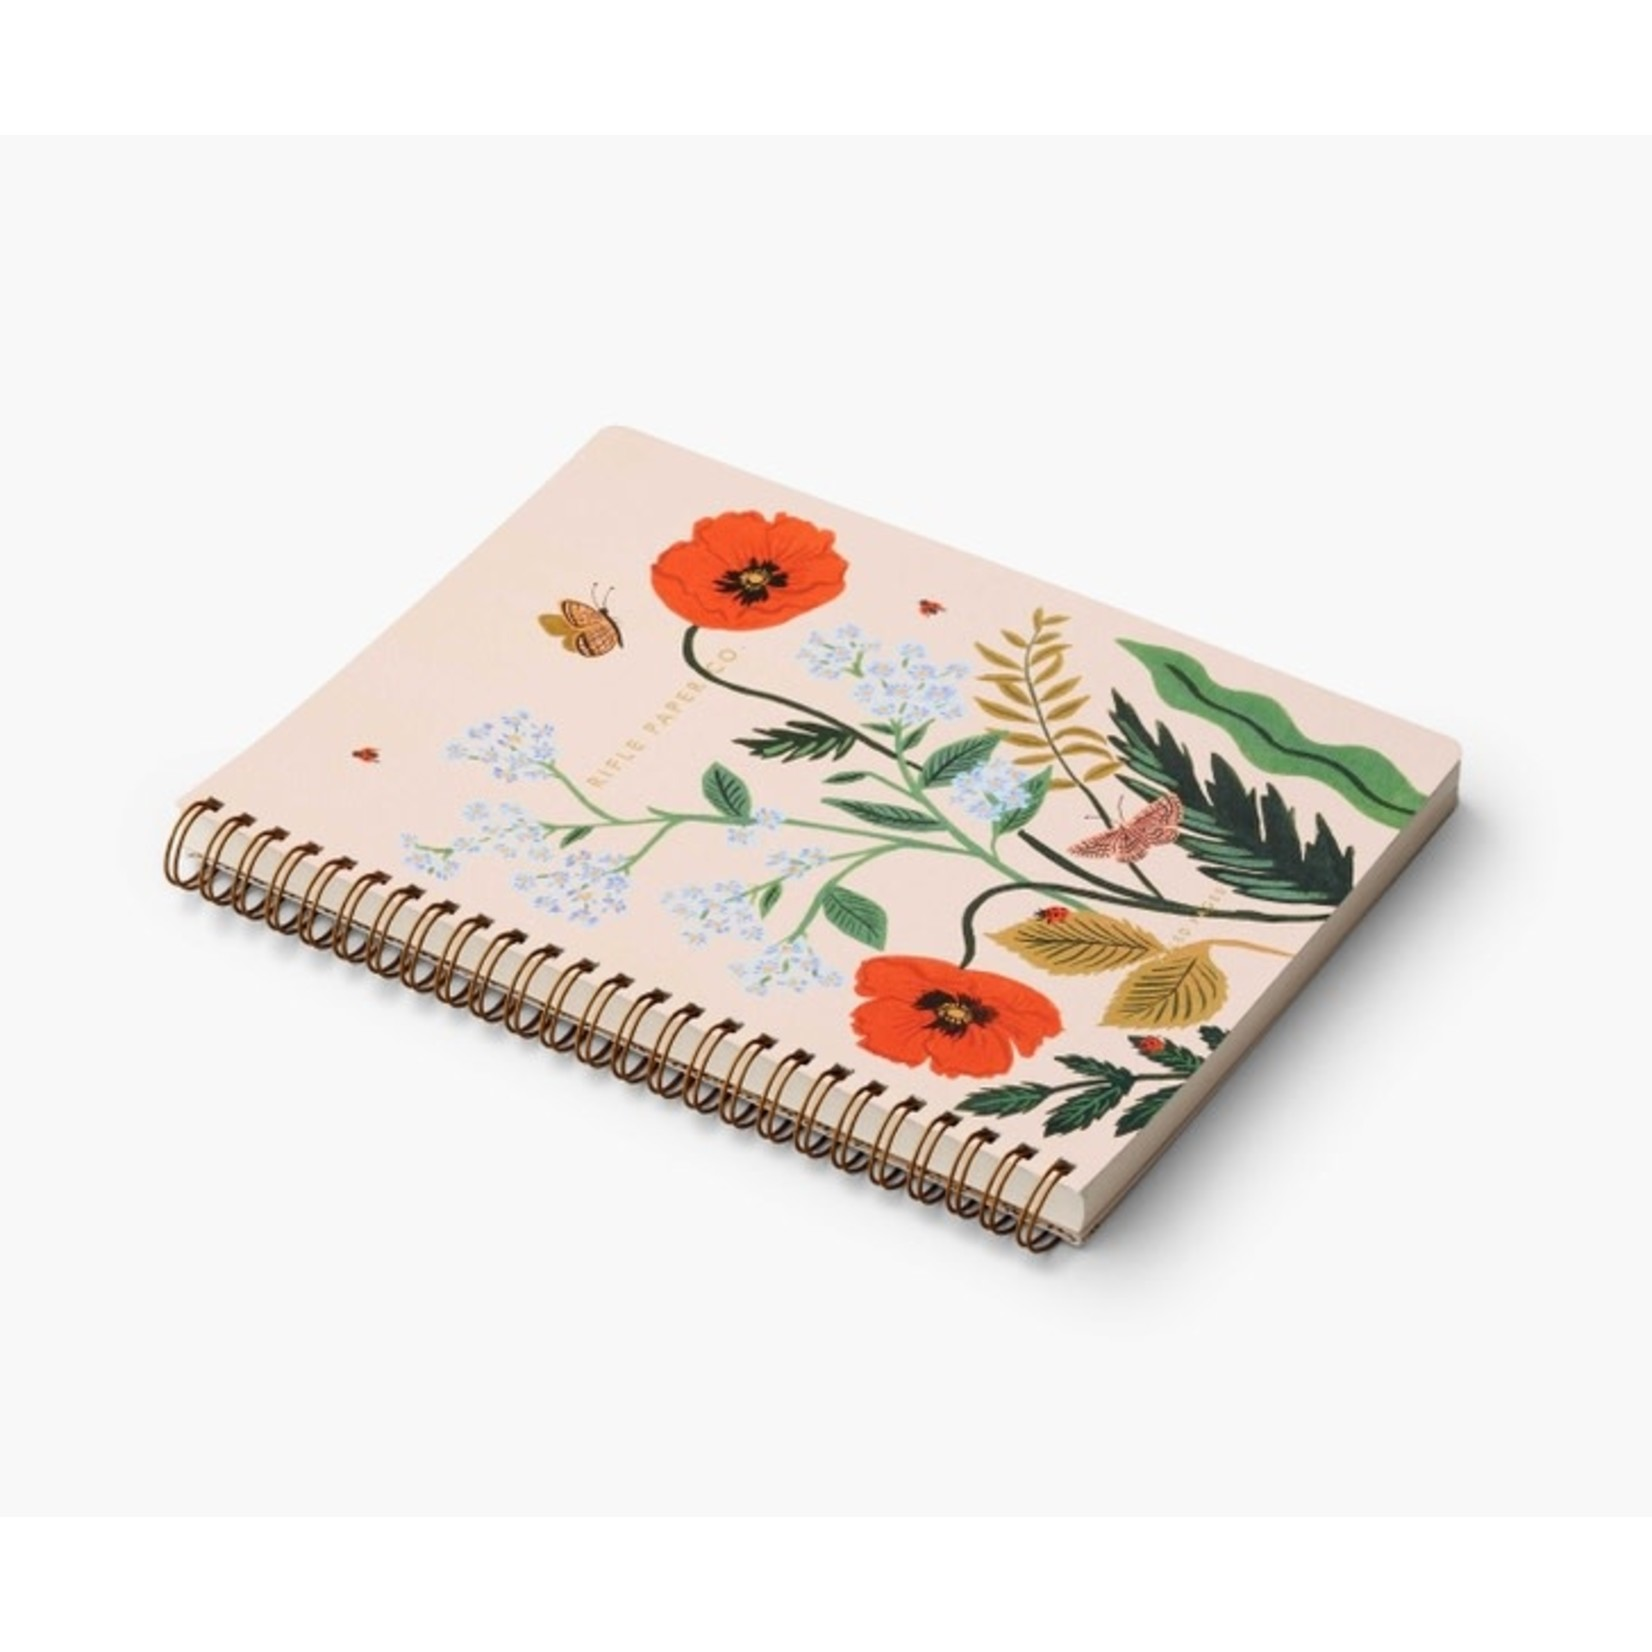 Rifle Paper Co. Cahier à spirale - Iceland poppy